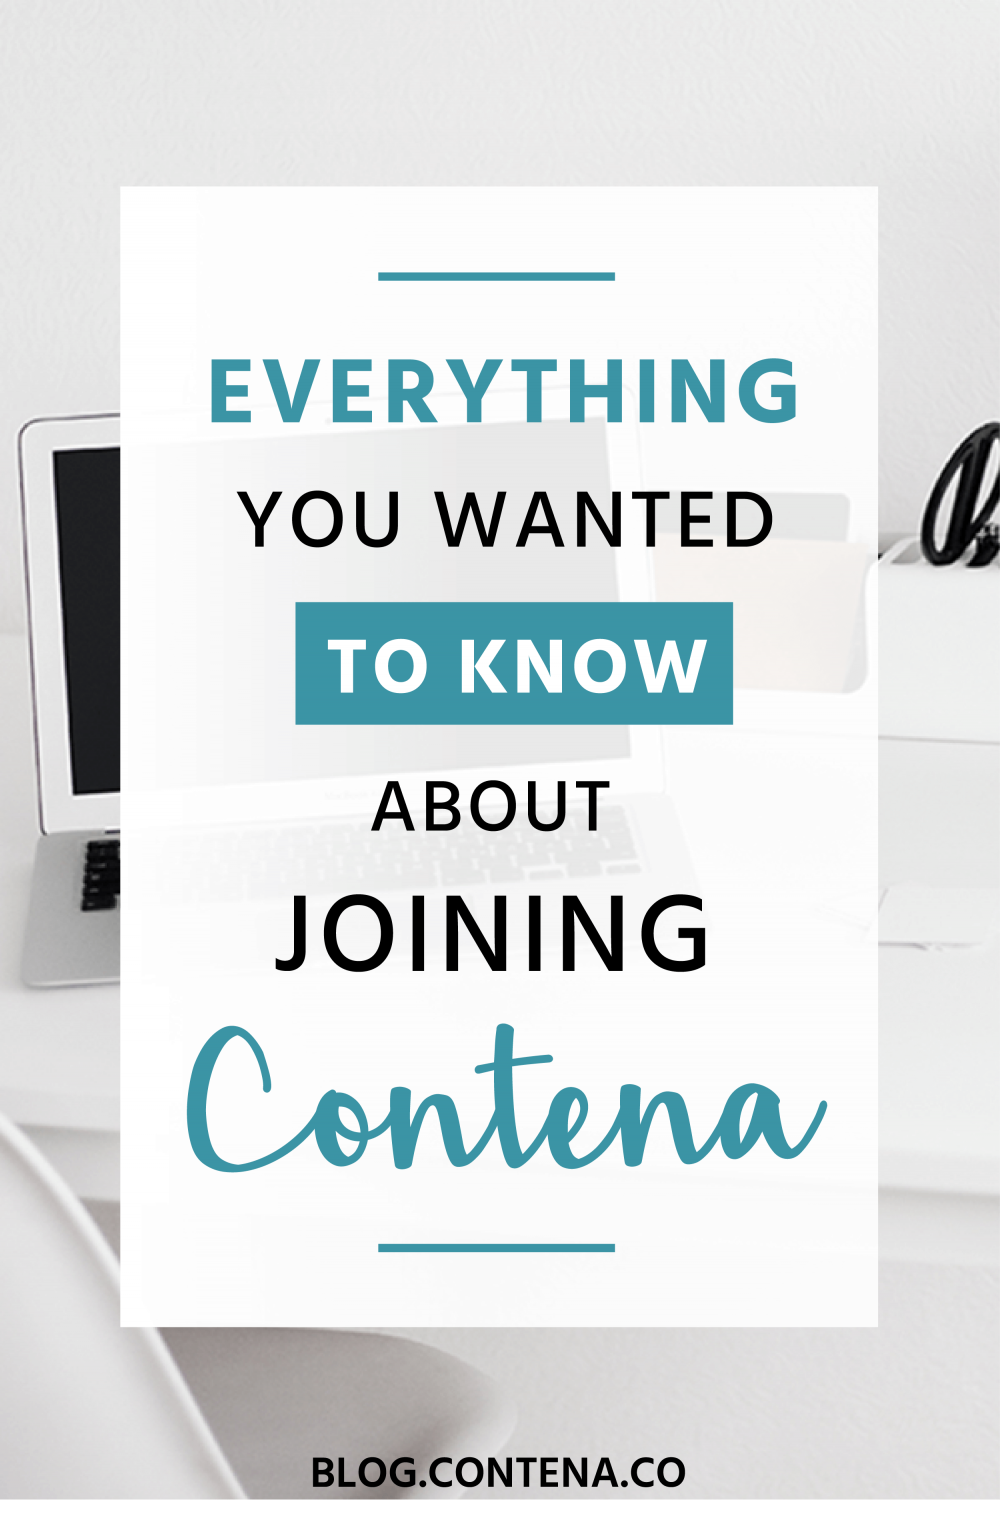 If you want to become a freelance writer, Contena may be just what you're looking for. Learn freelance writing and find legit freelance writing jobs. You have questions about Contena memberships, we have answers. This Contena FAQ will help freelancers who want to get paid to write, decide if they want to join Contena.